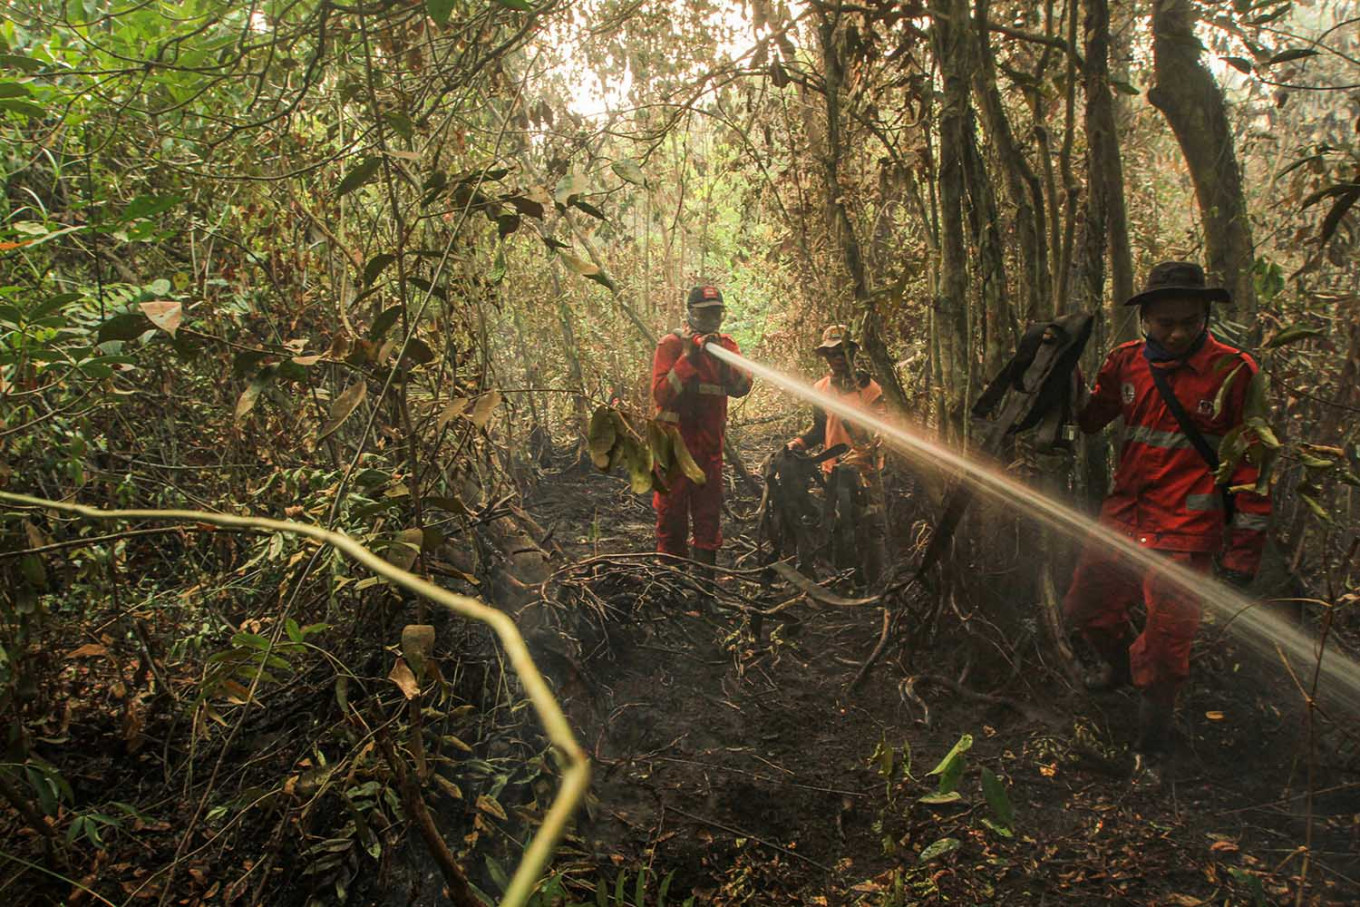 Firefighters fighting a peatland forest fire in South Sumatra on 23 September 2019.